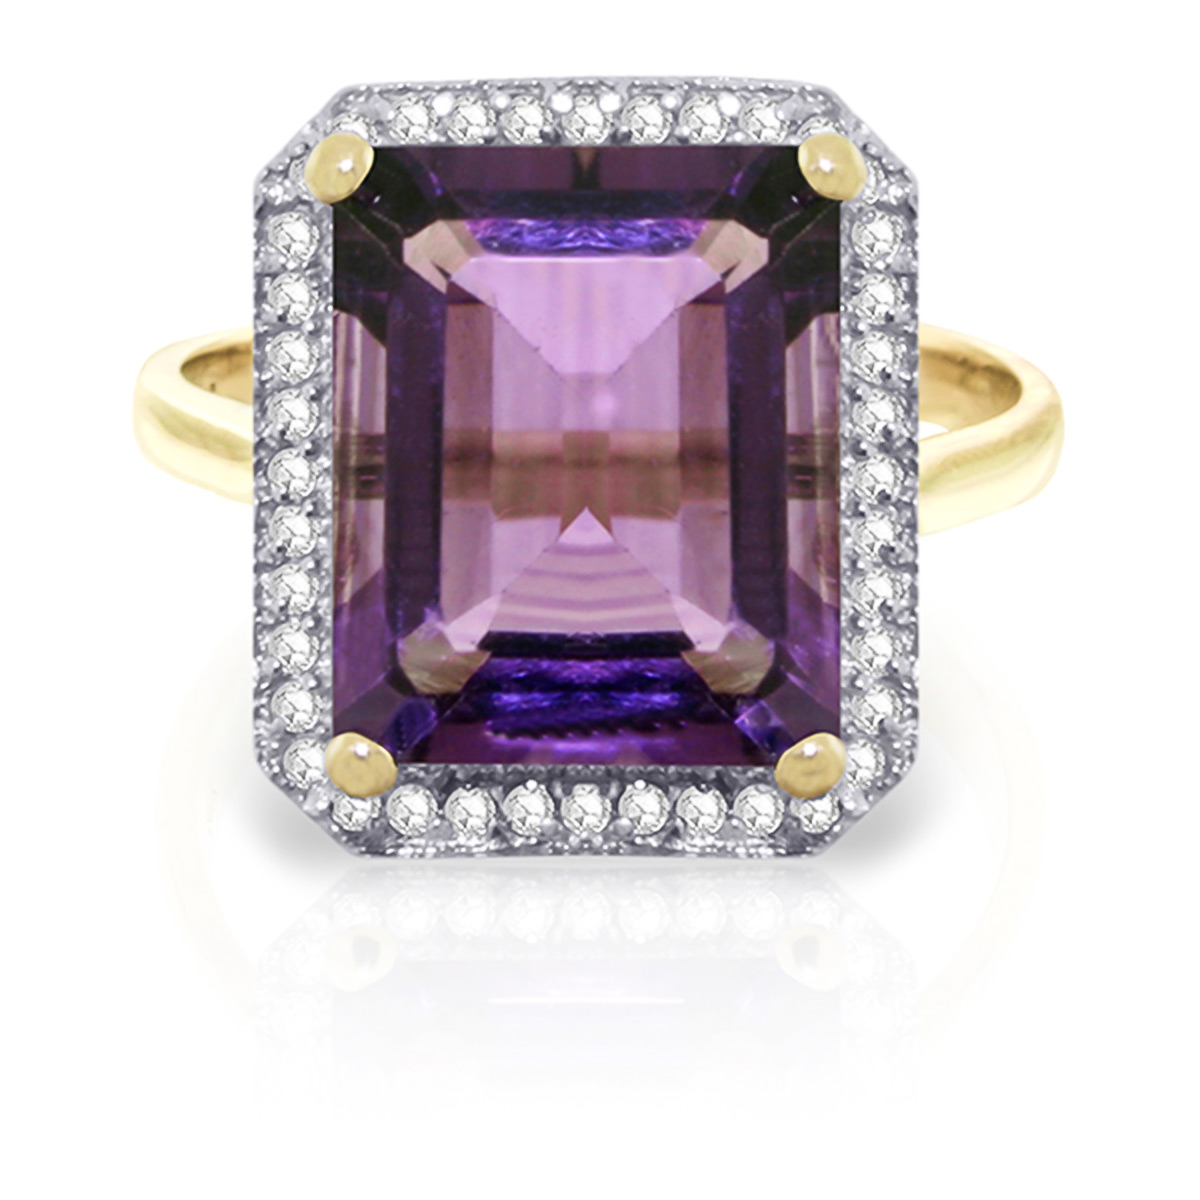 Amethyst and Diamond Halo Ring 5.6ct in 9ct Gold